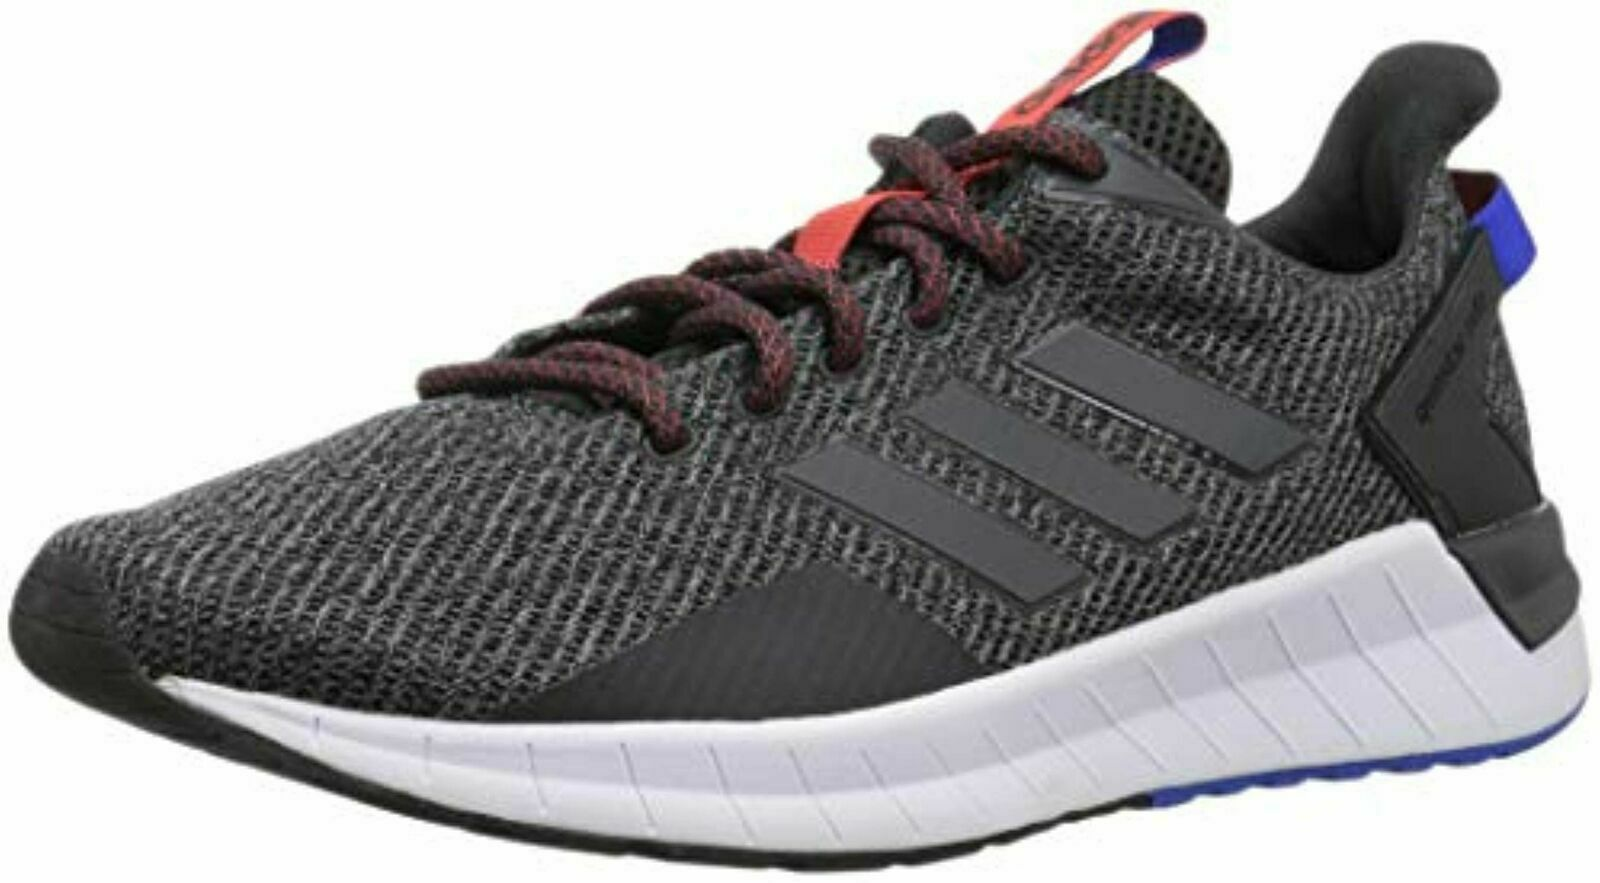 Adidas Men's Questar Ride Running shoes size 13